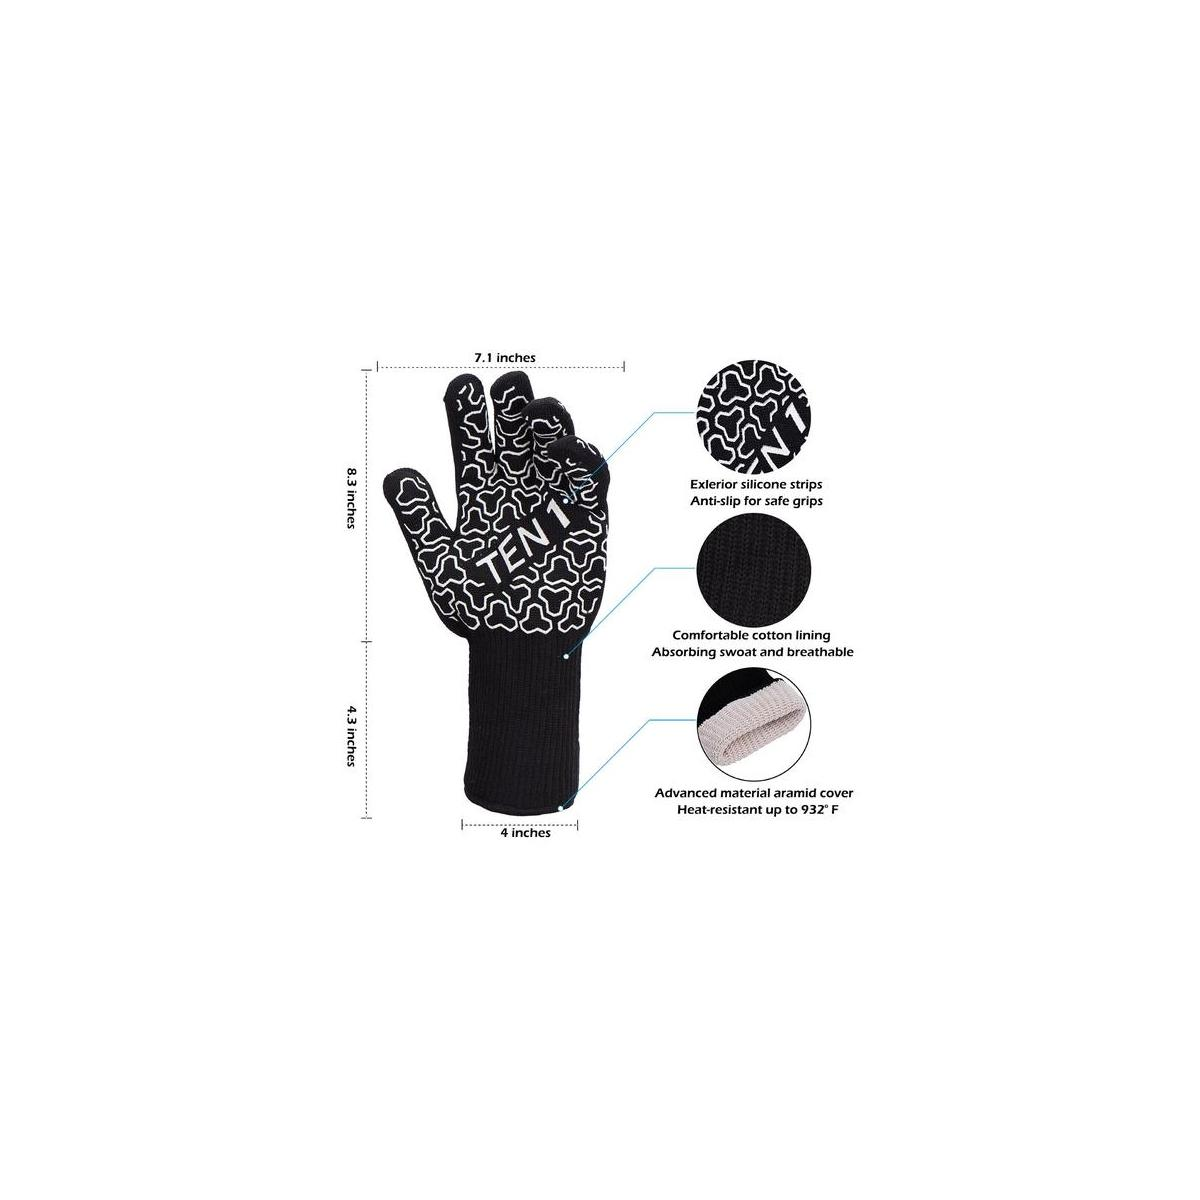 Bbq Gloves 932f Extreme Heat Resistant Grill Gloves For